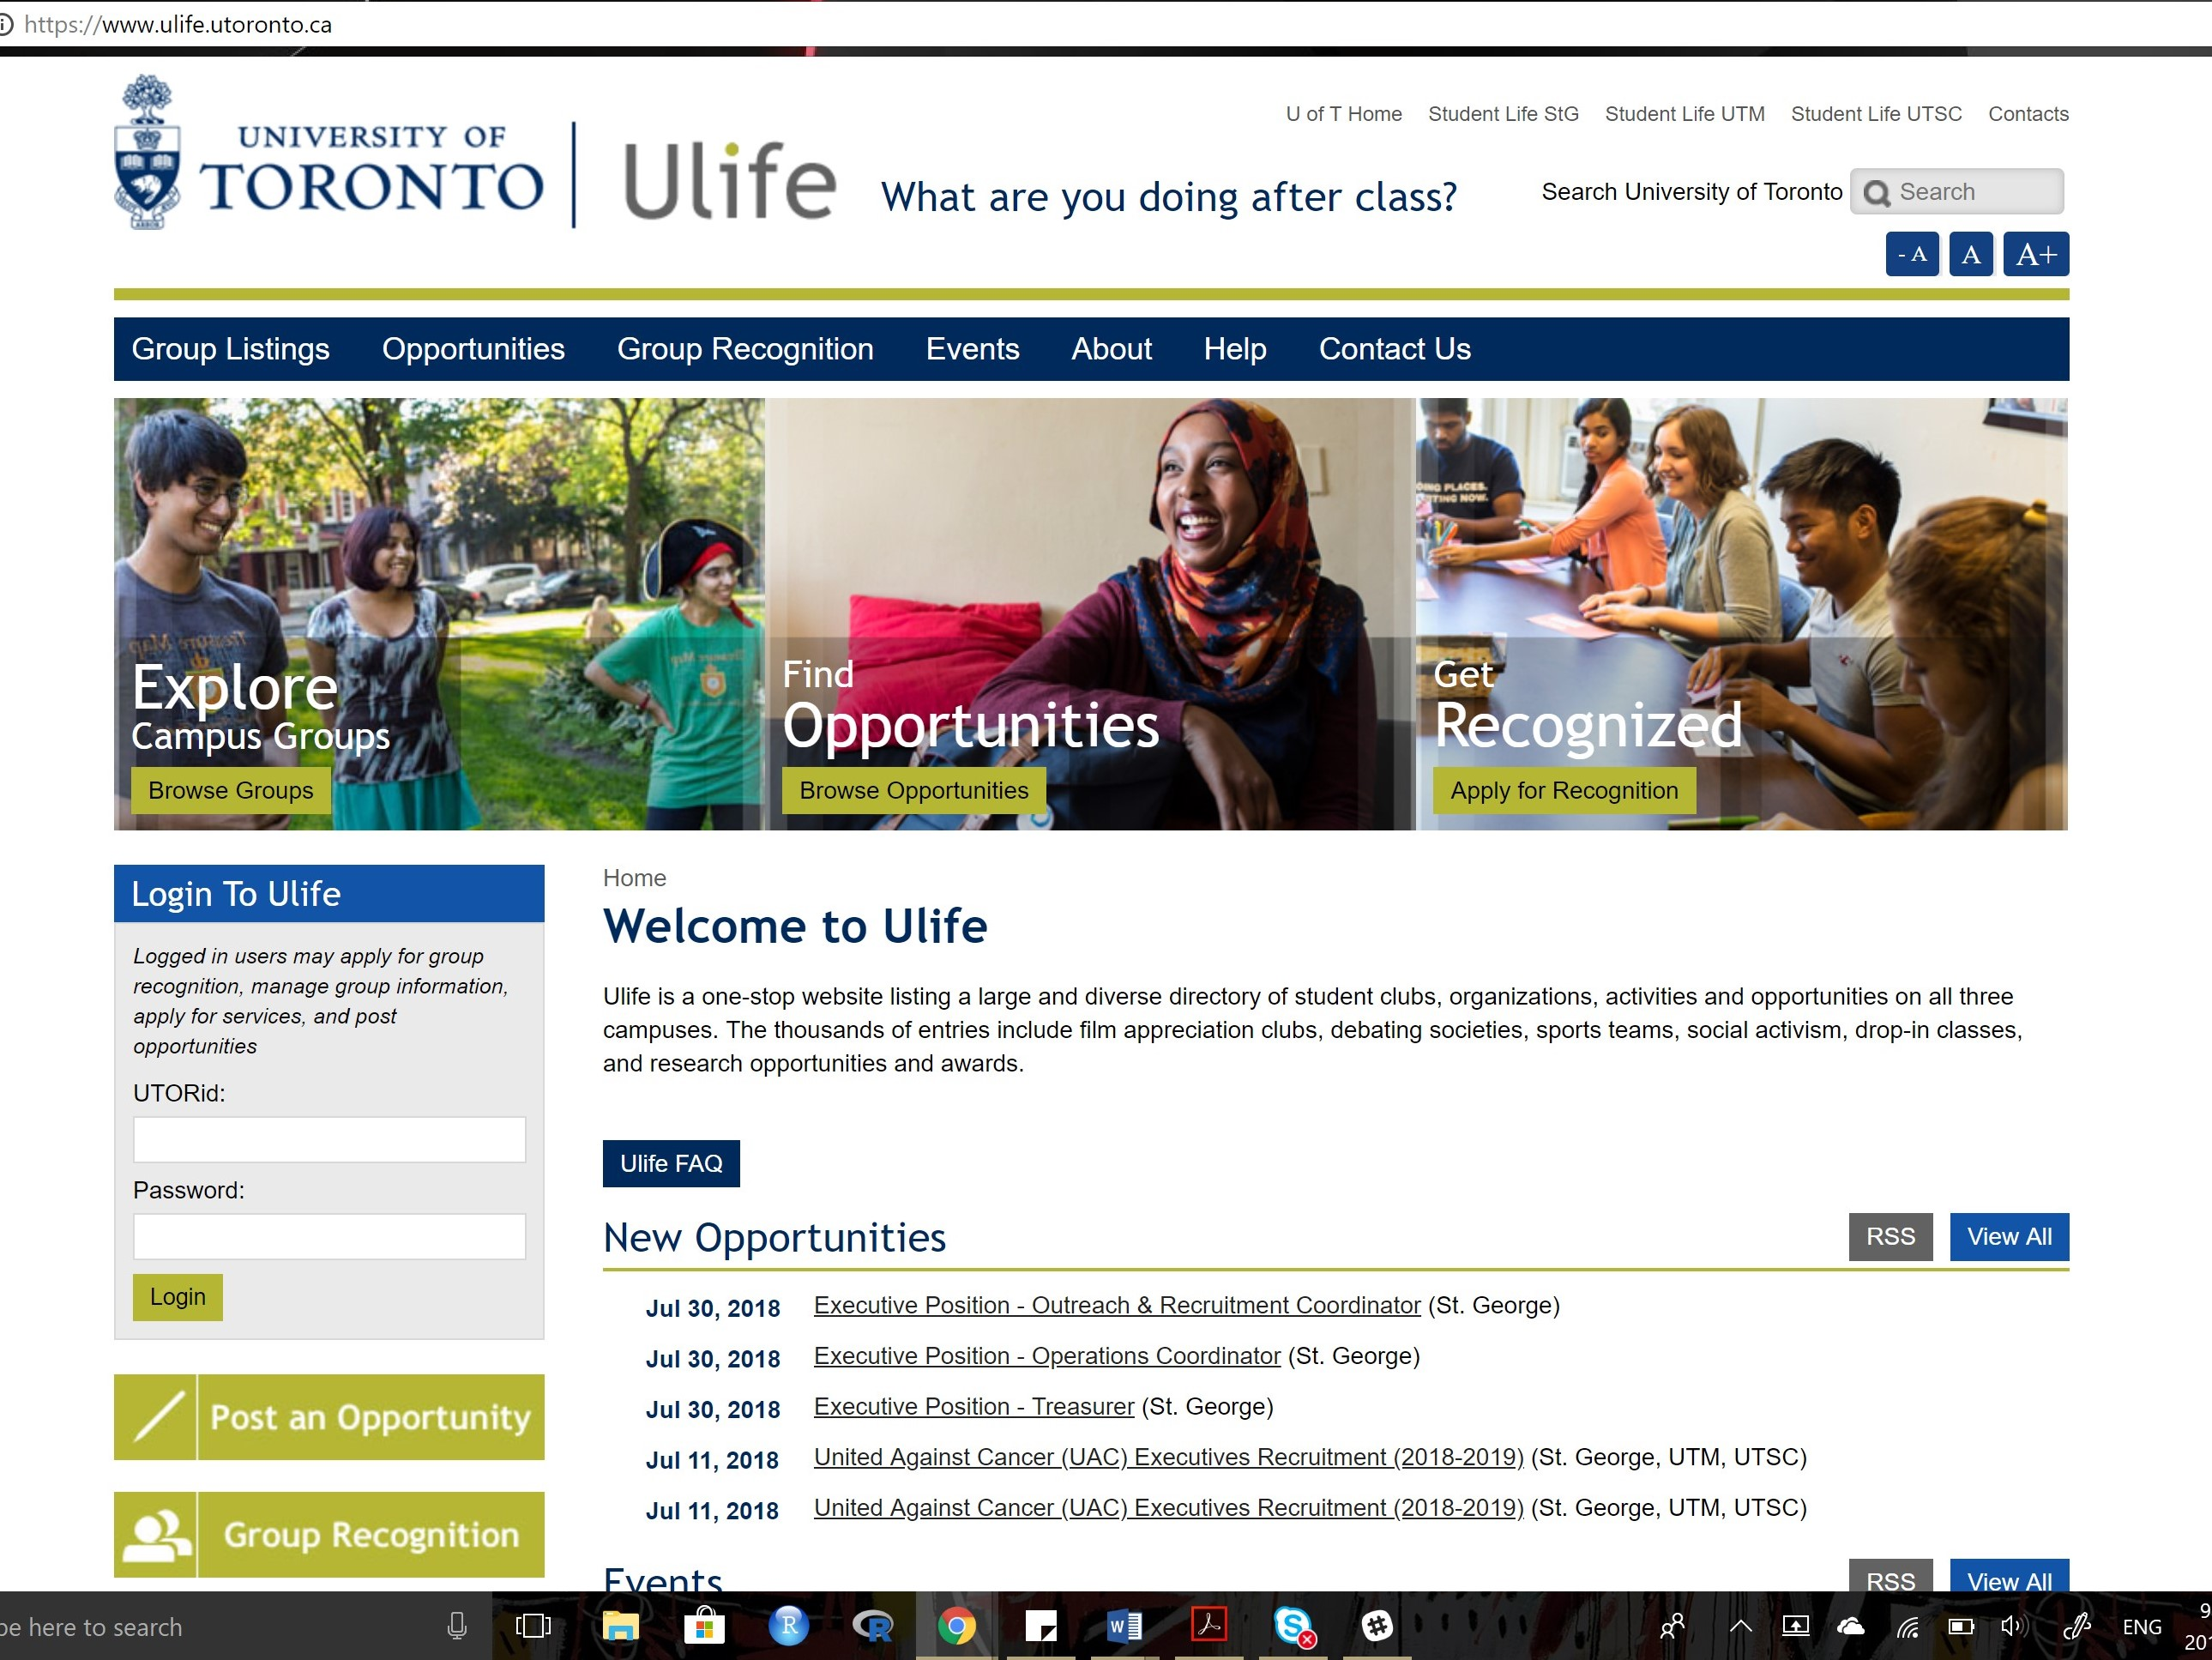 a screen-shot of the Ulife webpage